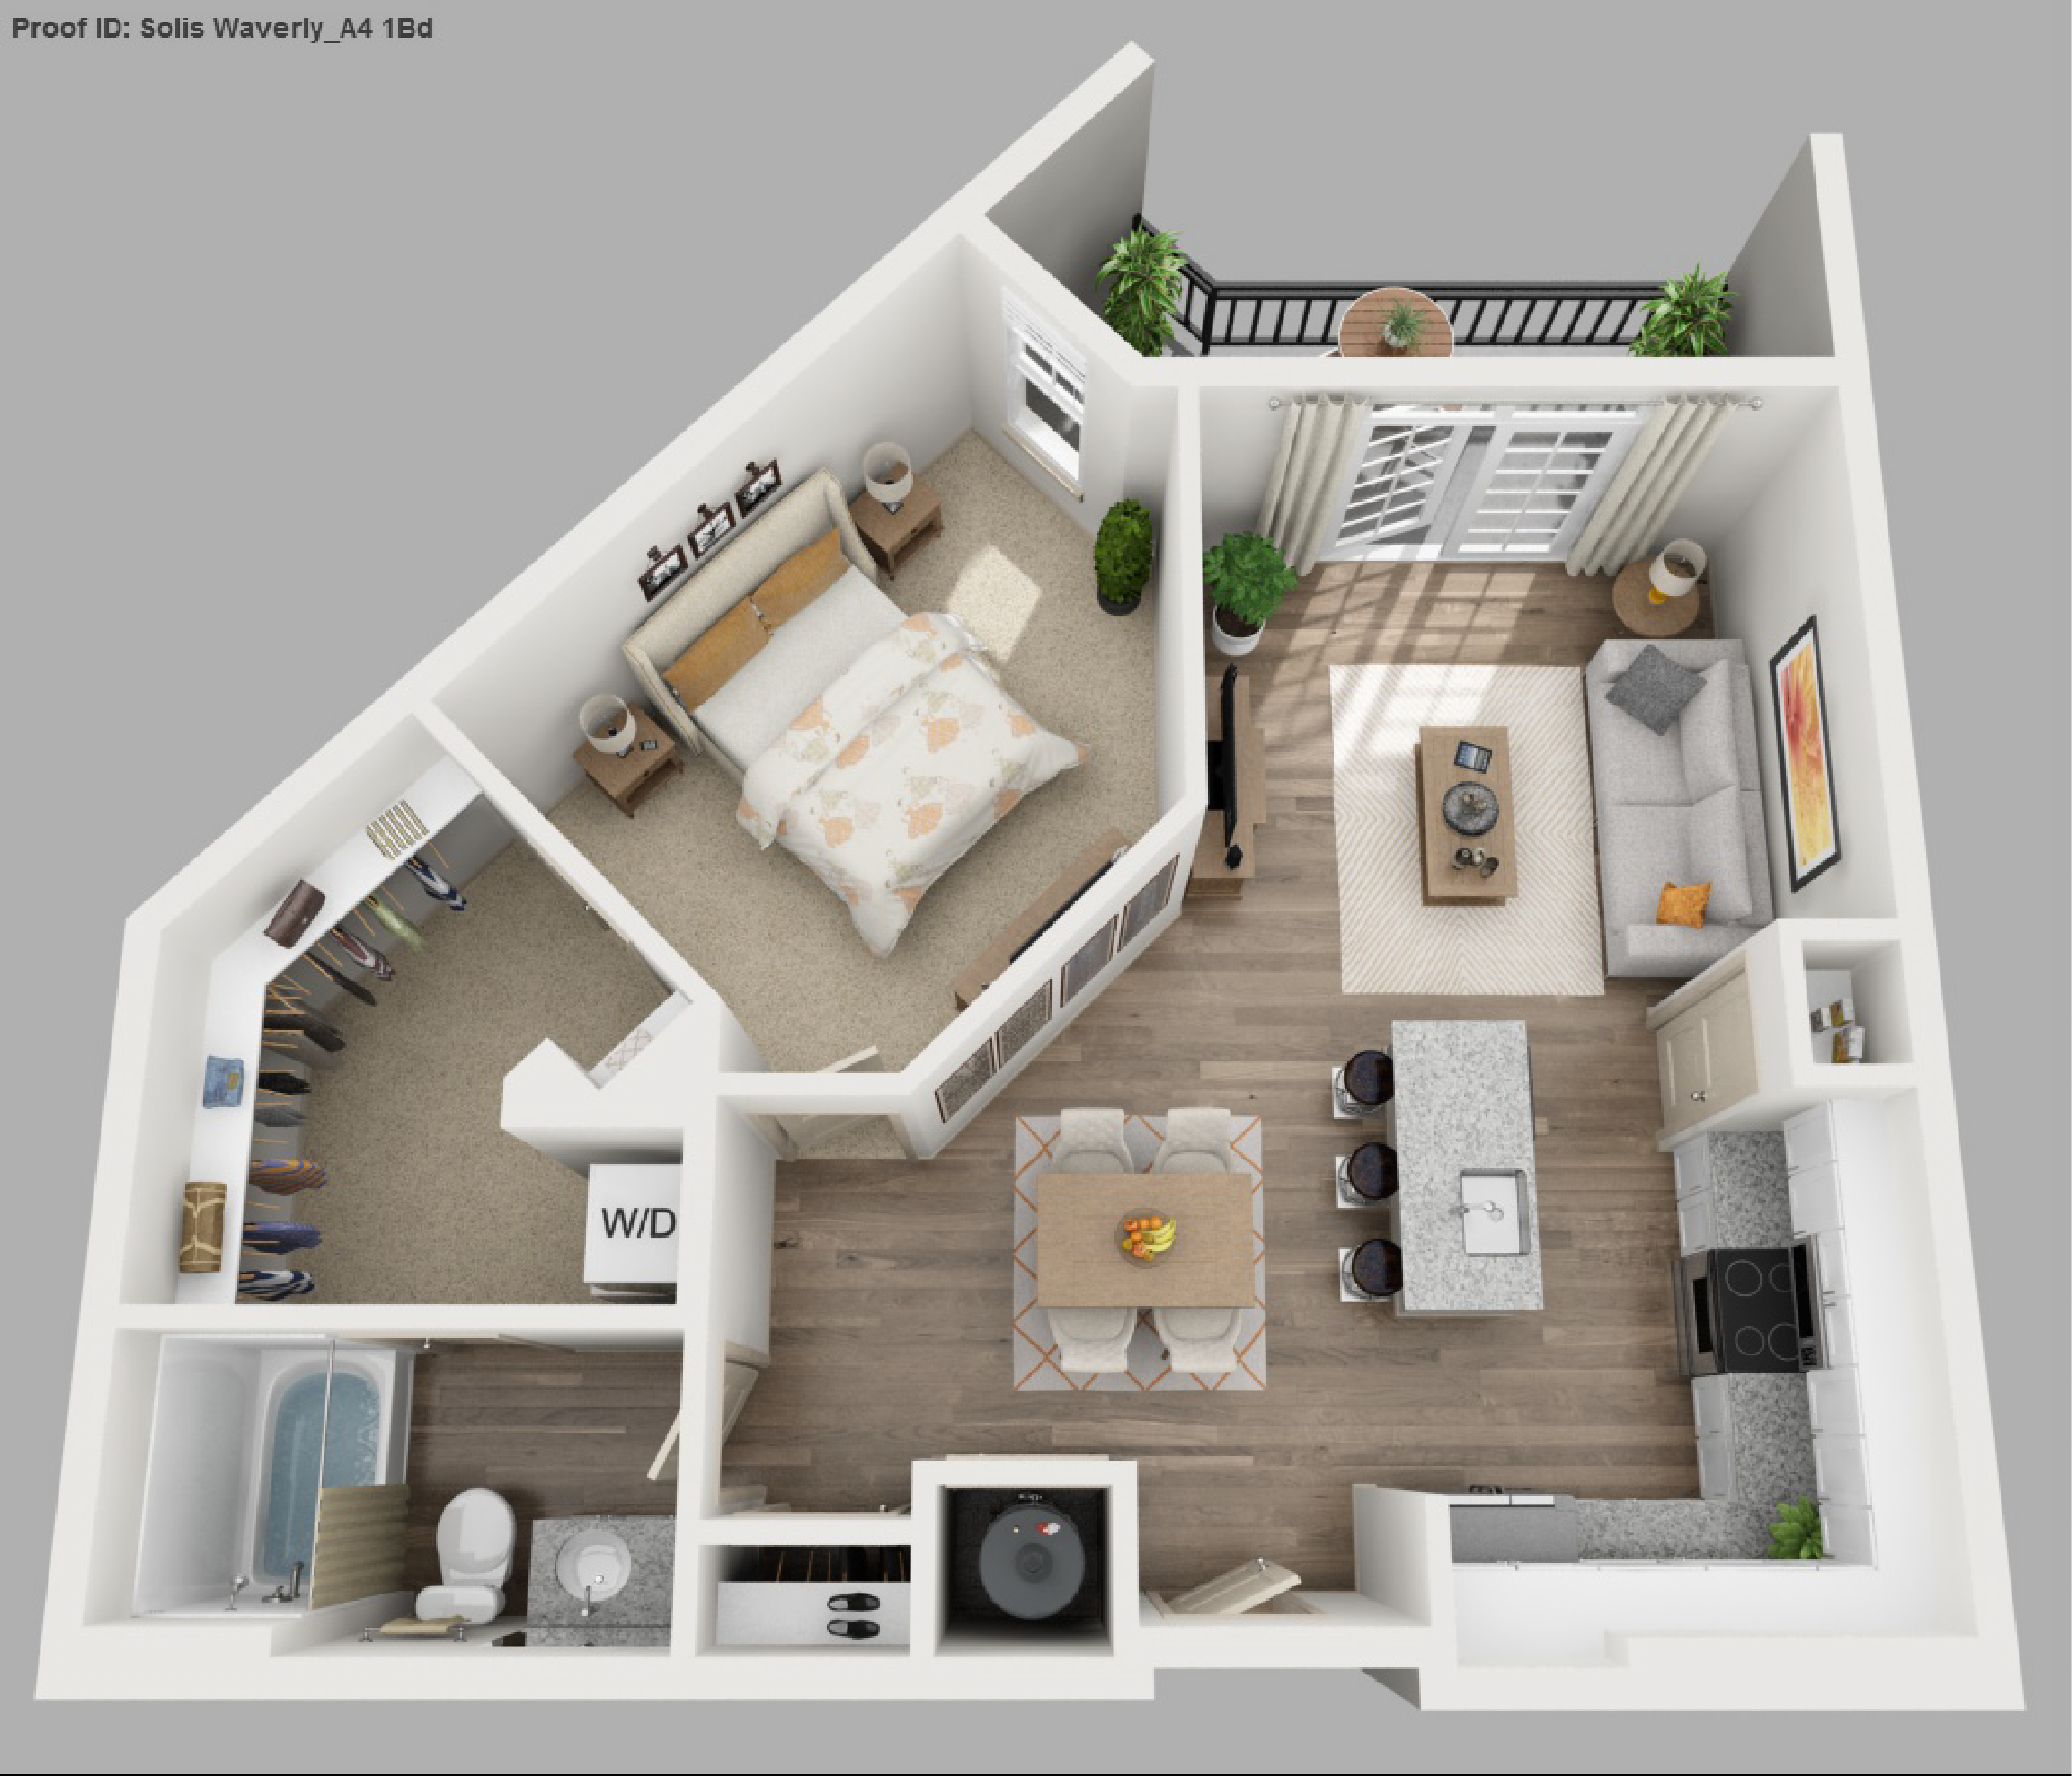 Solis apartments floorplans waverly for One bedroom apartment floor plan ideas